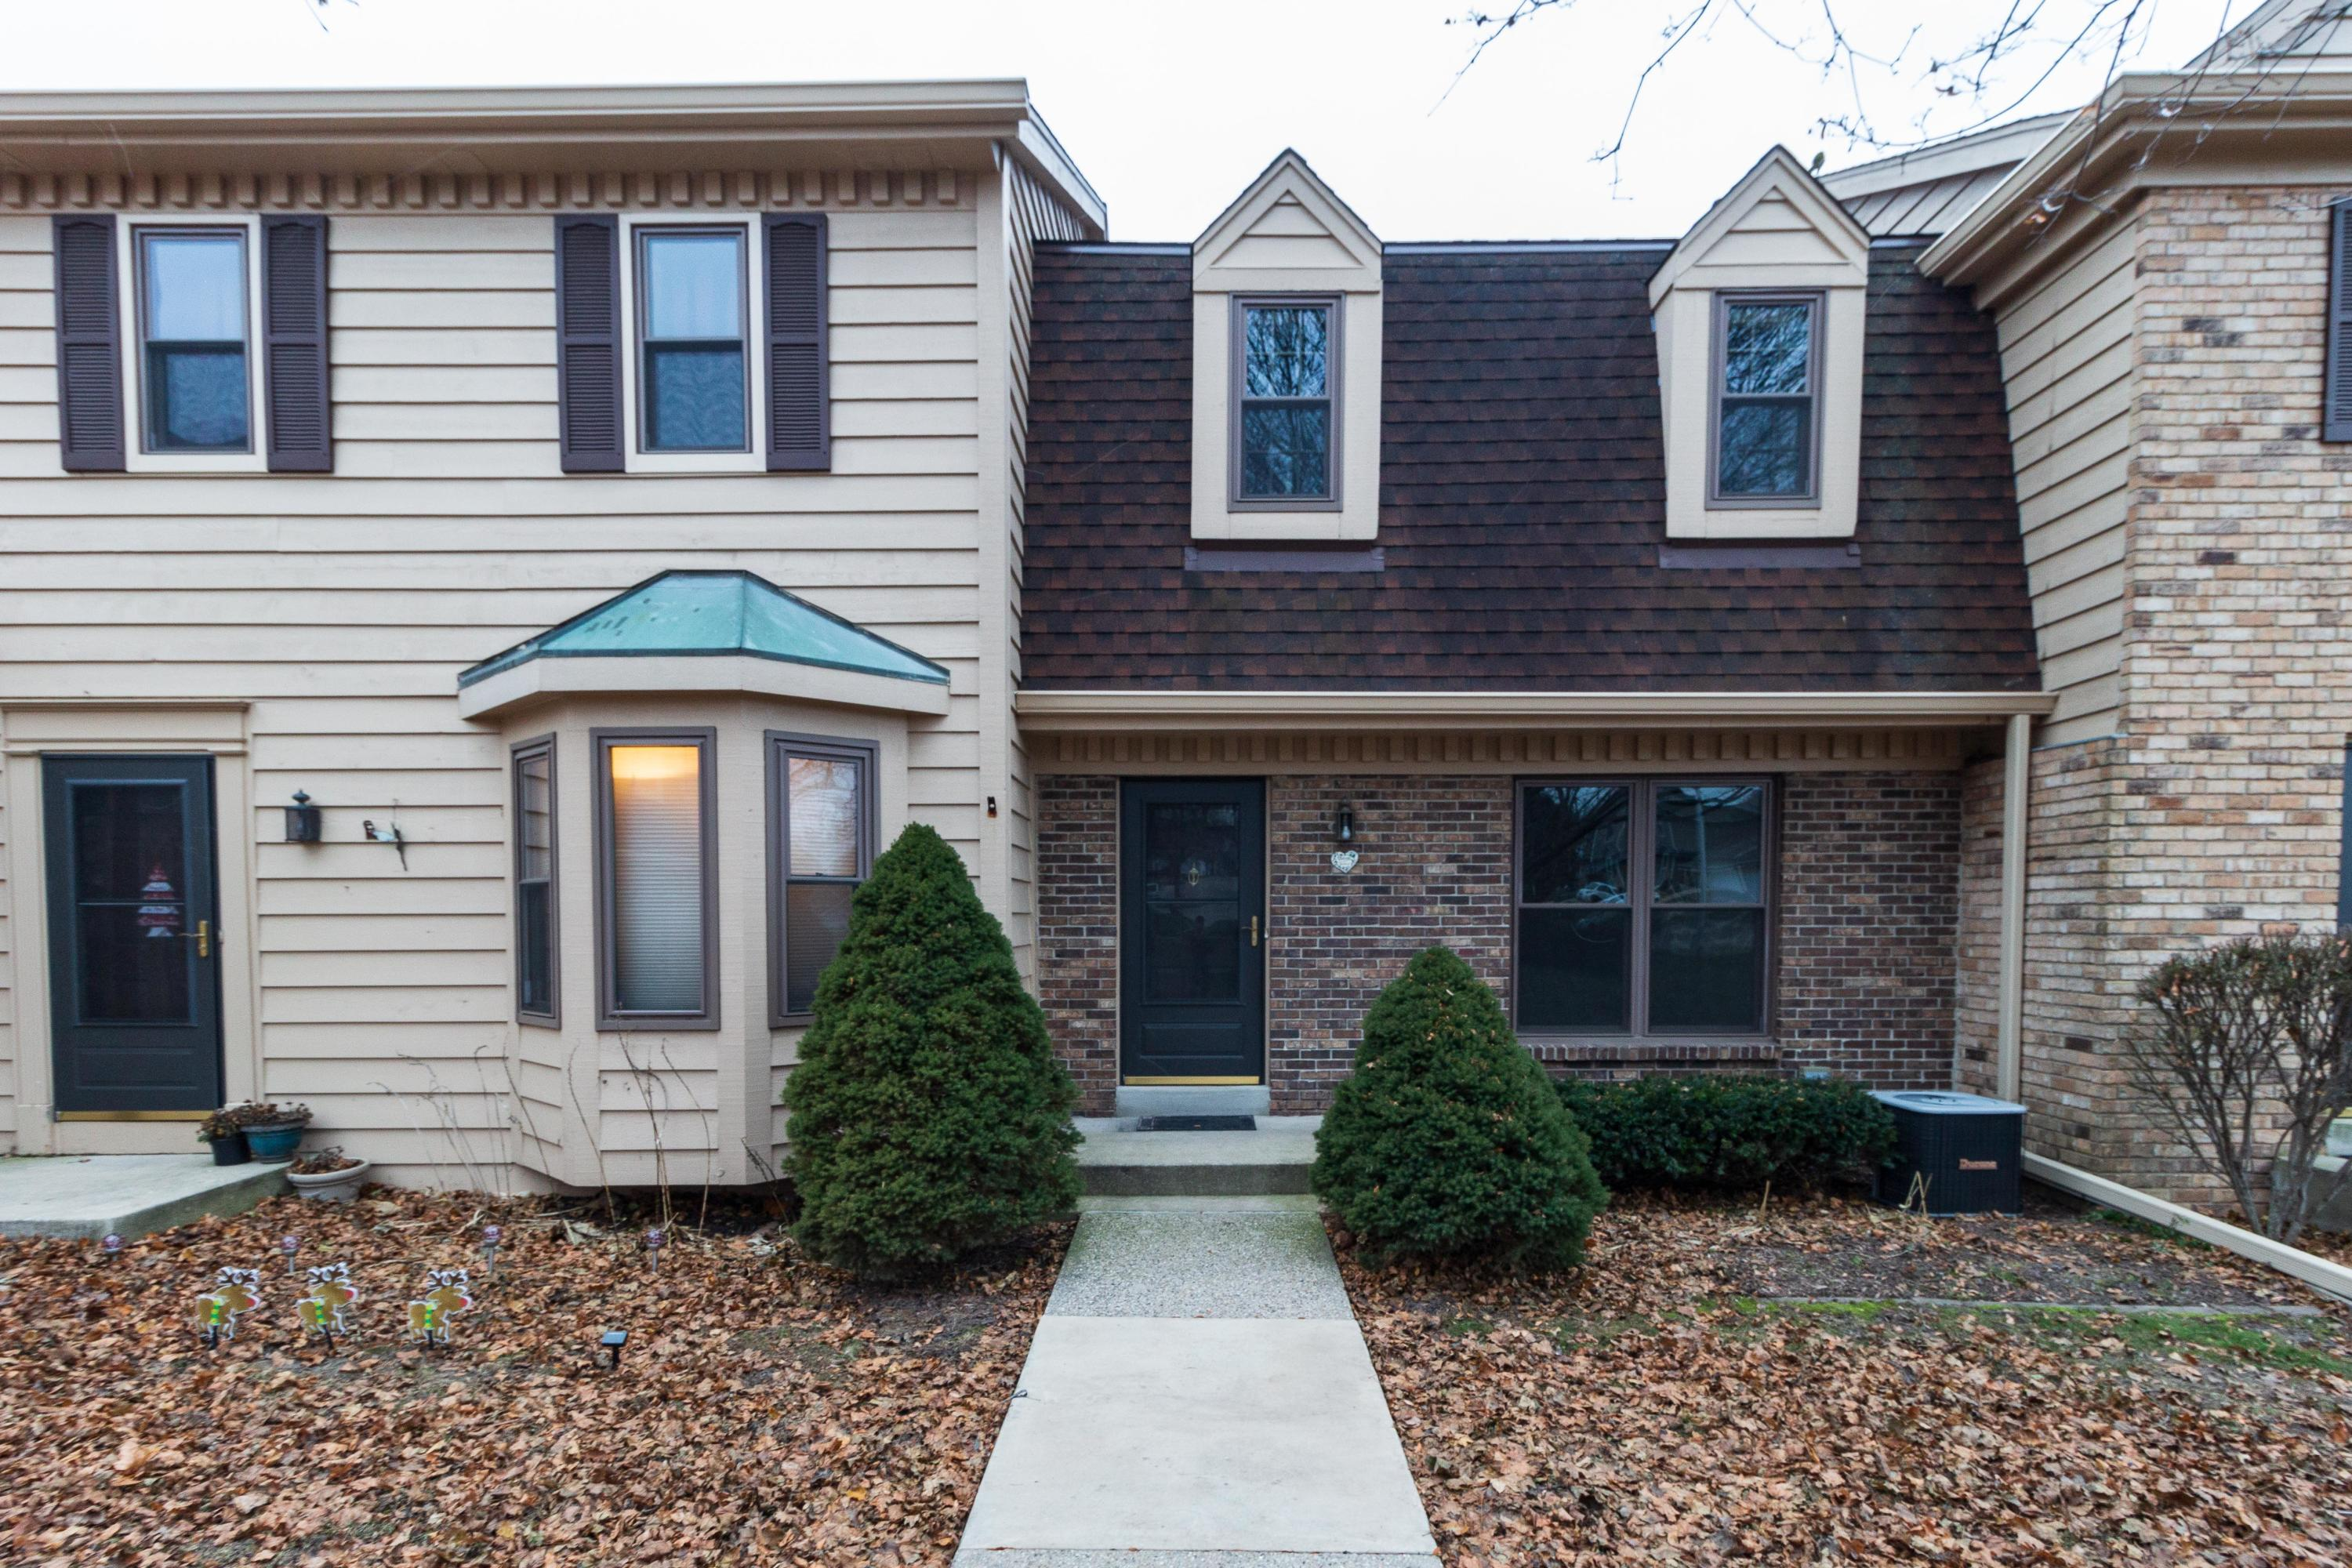 384 Willow Grove Dr, Pewaukee, Wisconsin 53072, 2 Bedrooms Bedrooms, 5 Rooms Rooms,1 BathroomBathrooms,Condominiums,For Sale,Willow Grove Dr,1,1615171